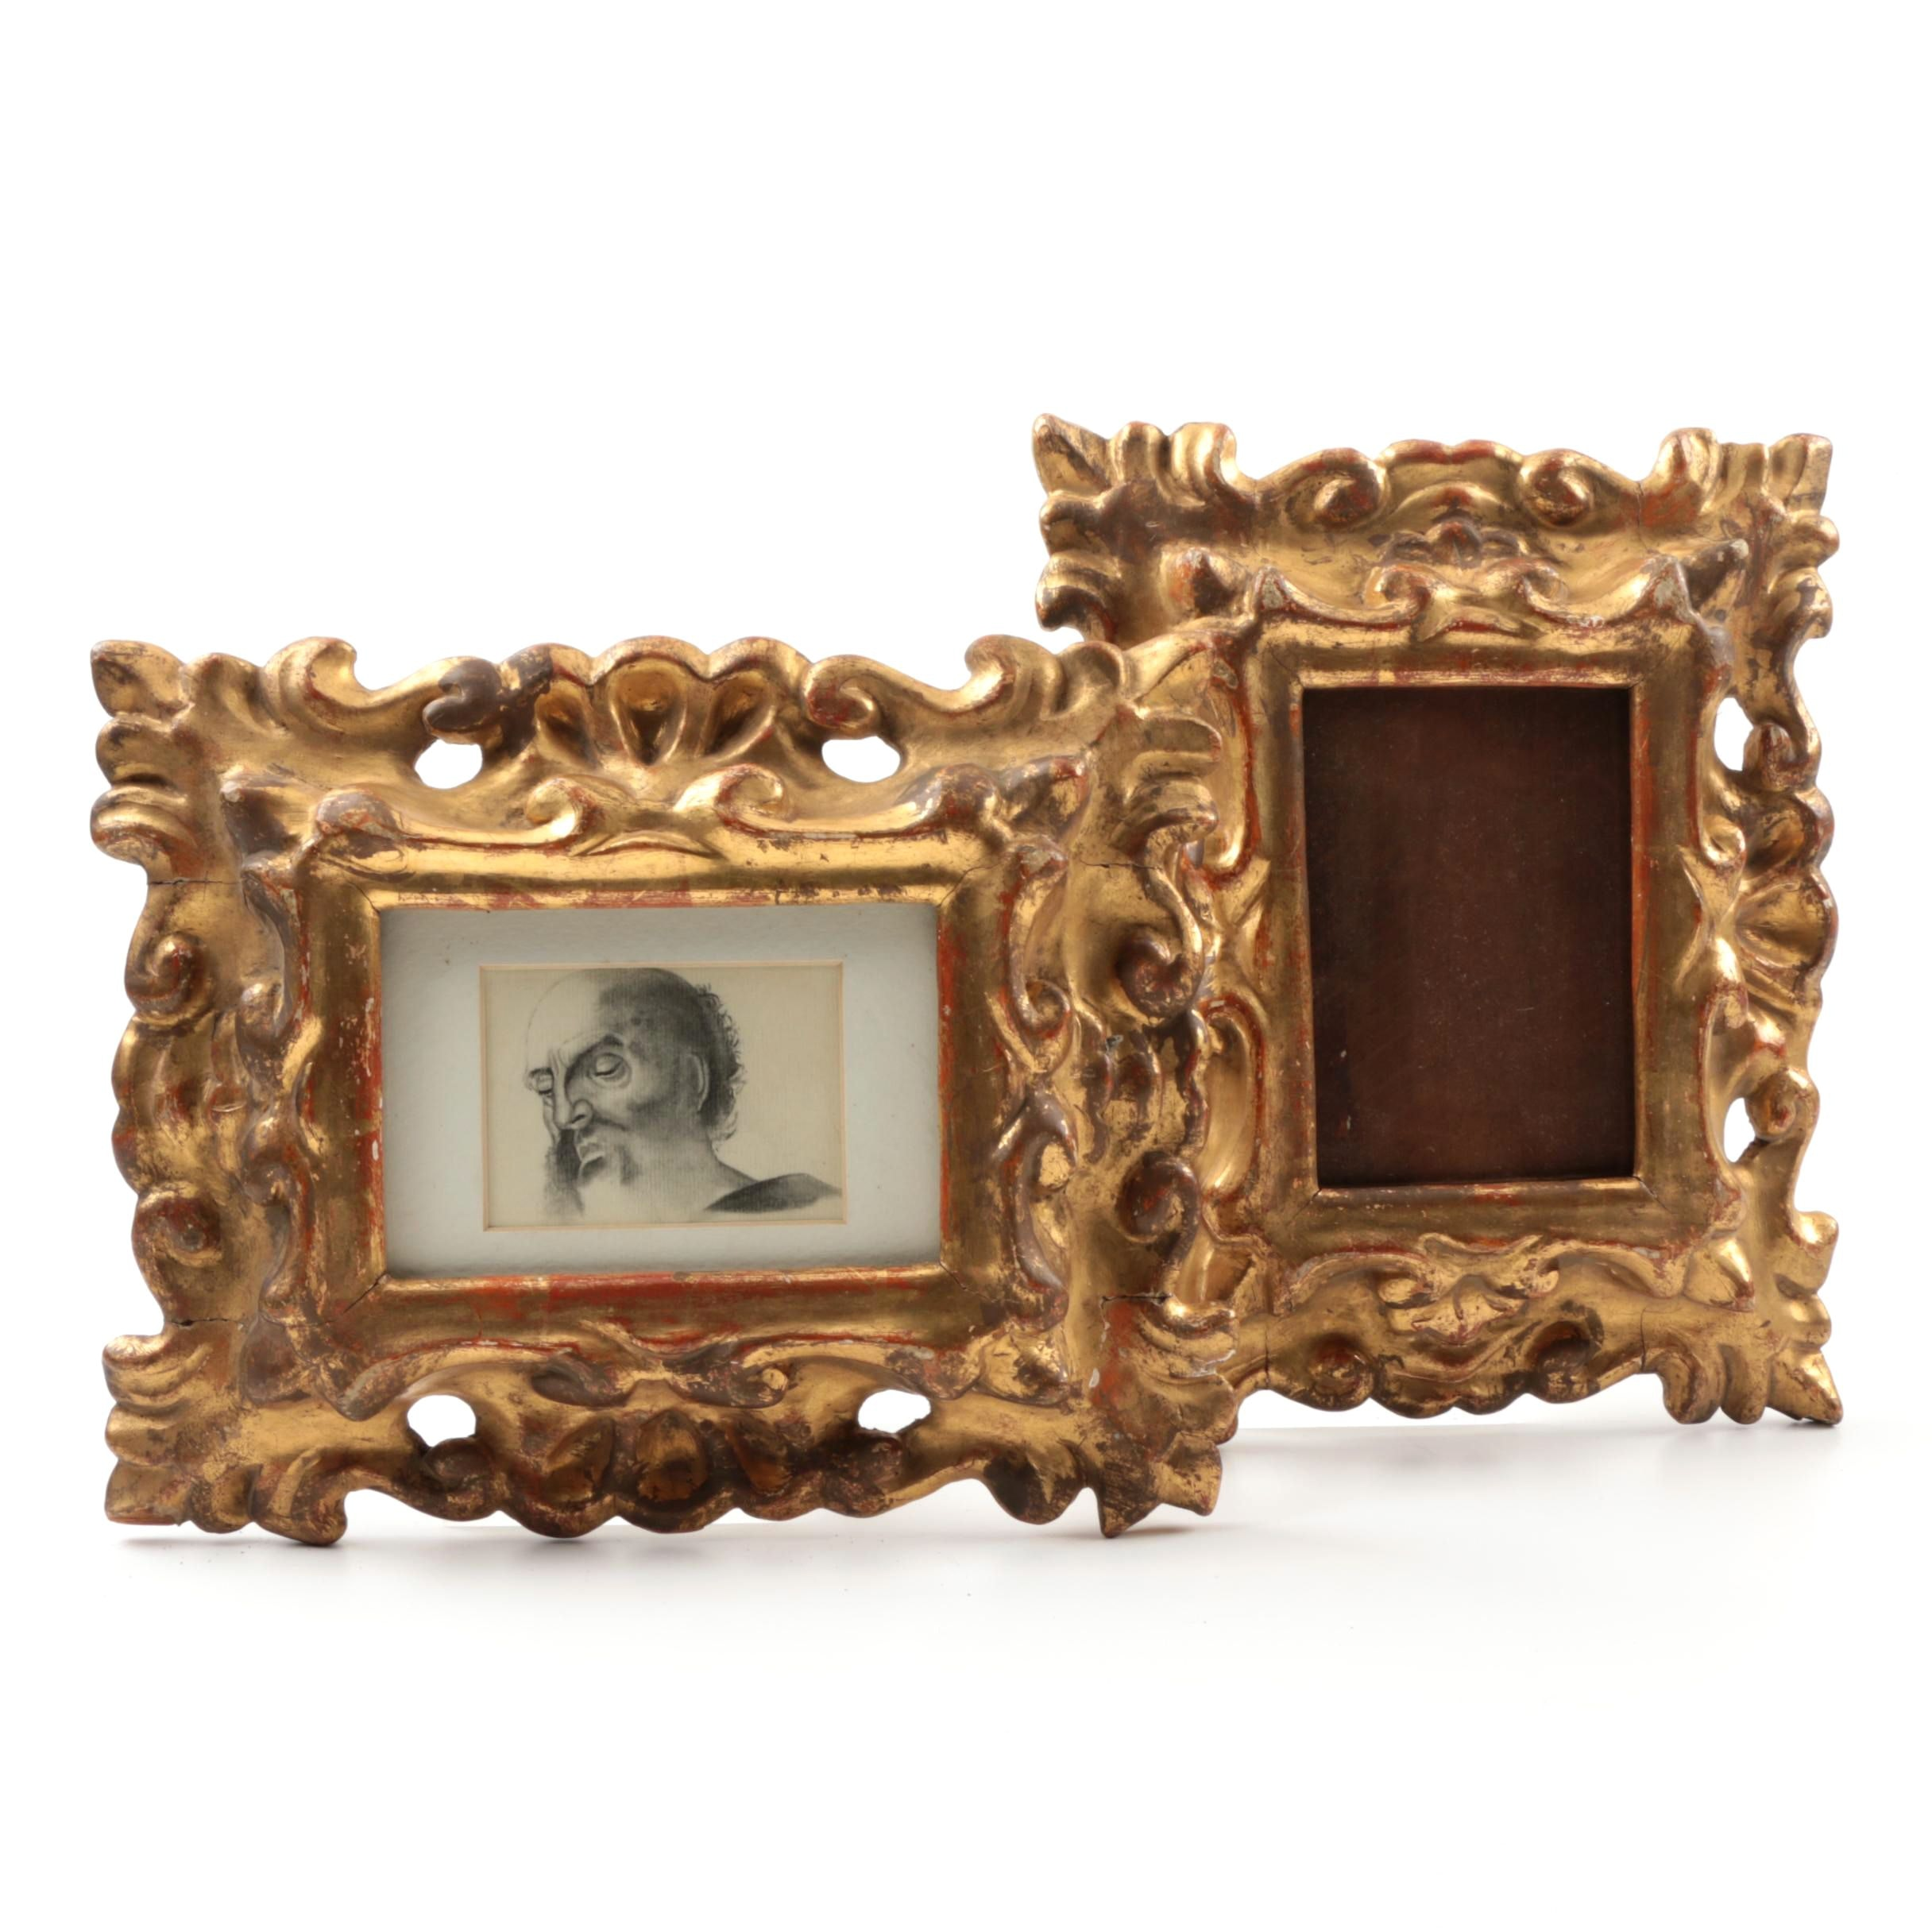 19th-Century Continental Gilt and Gesso Carved Wood Picture Frames